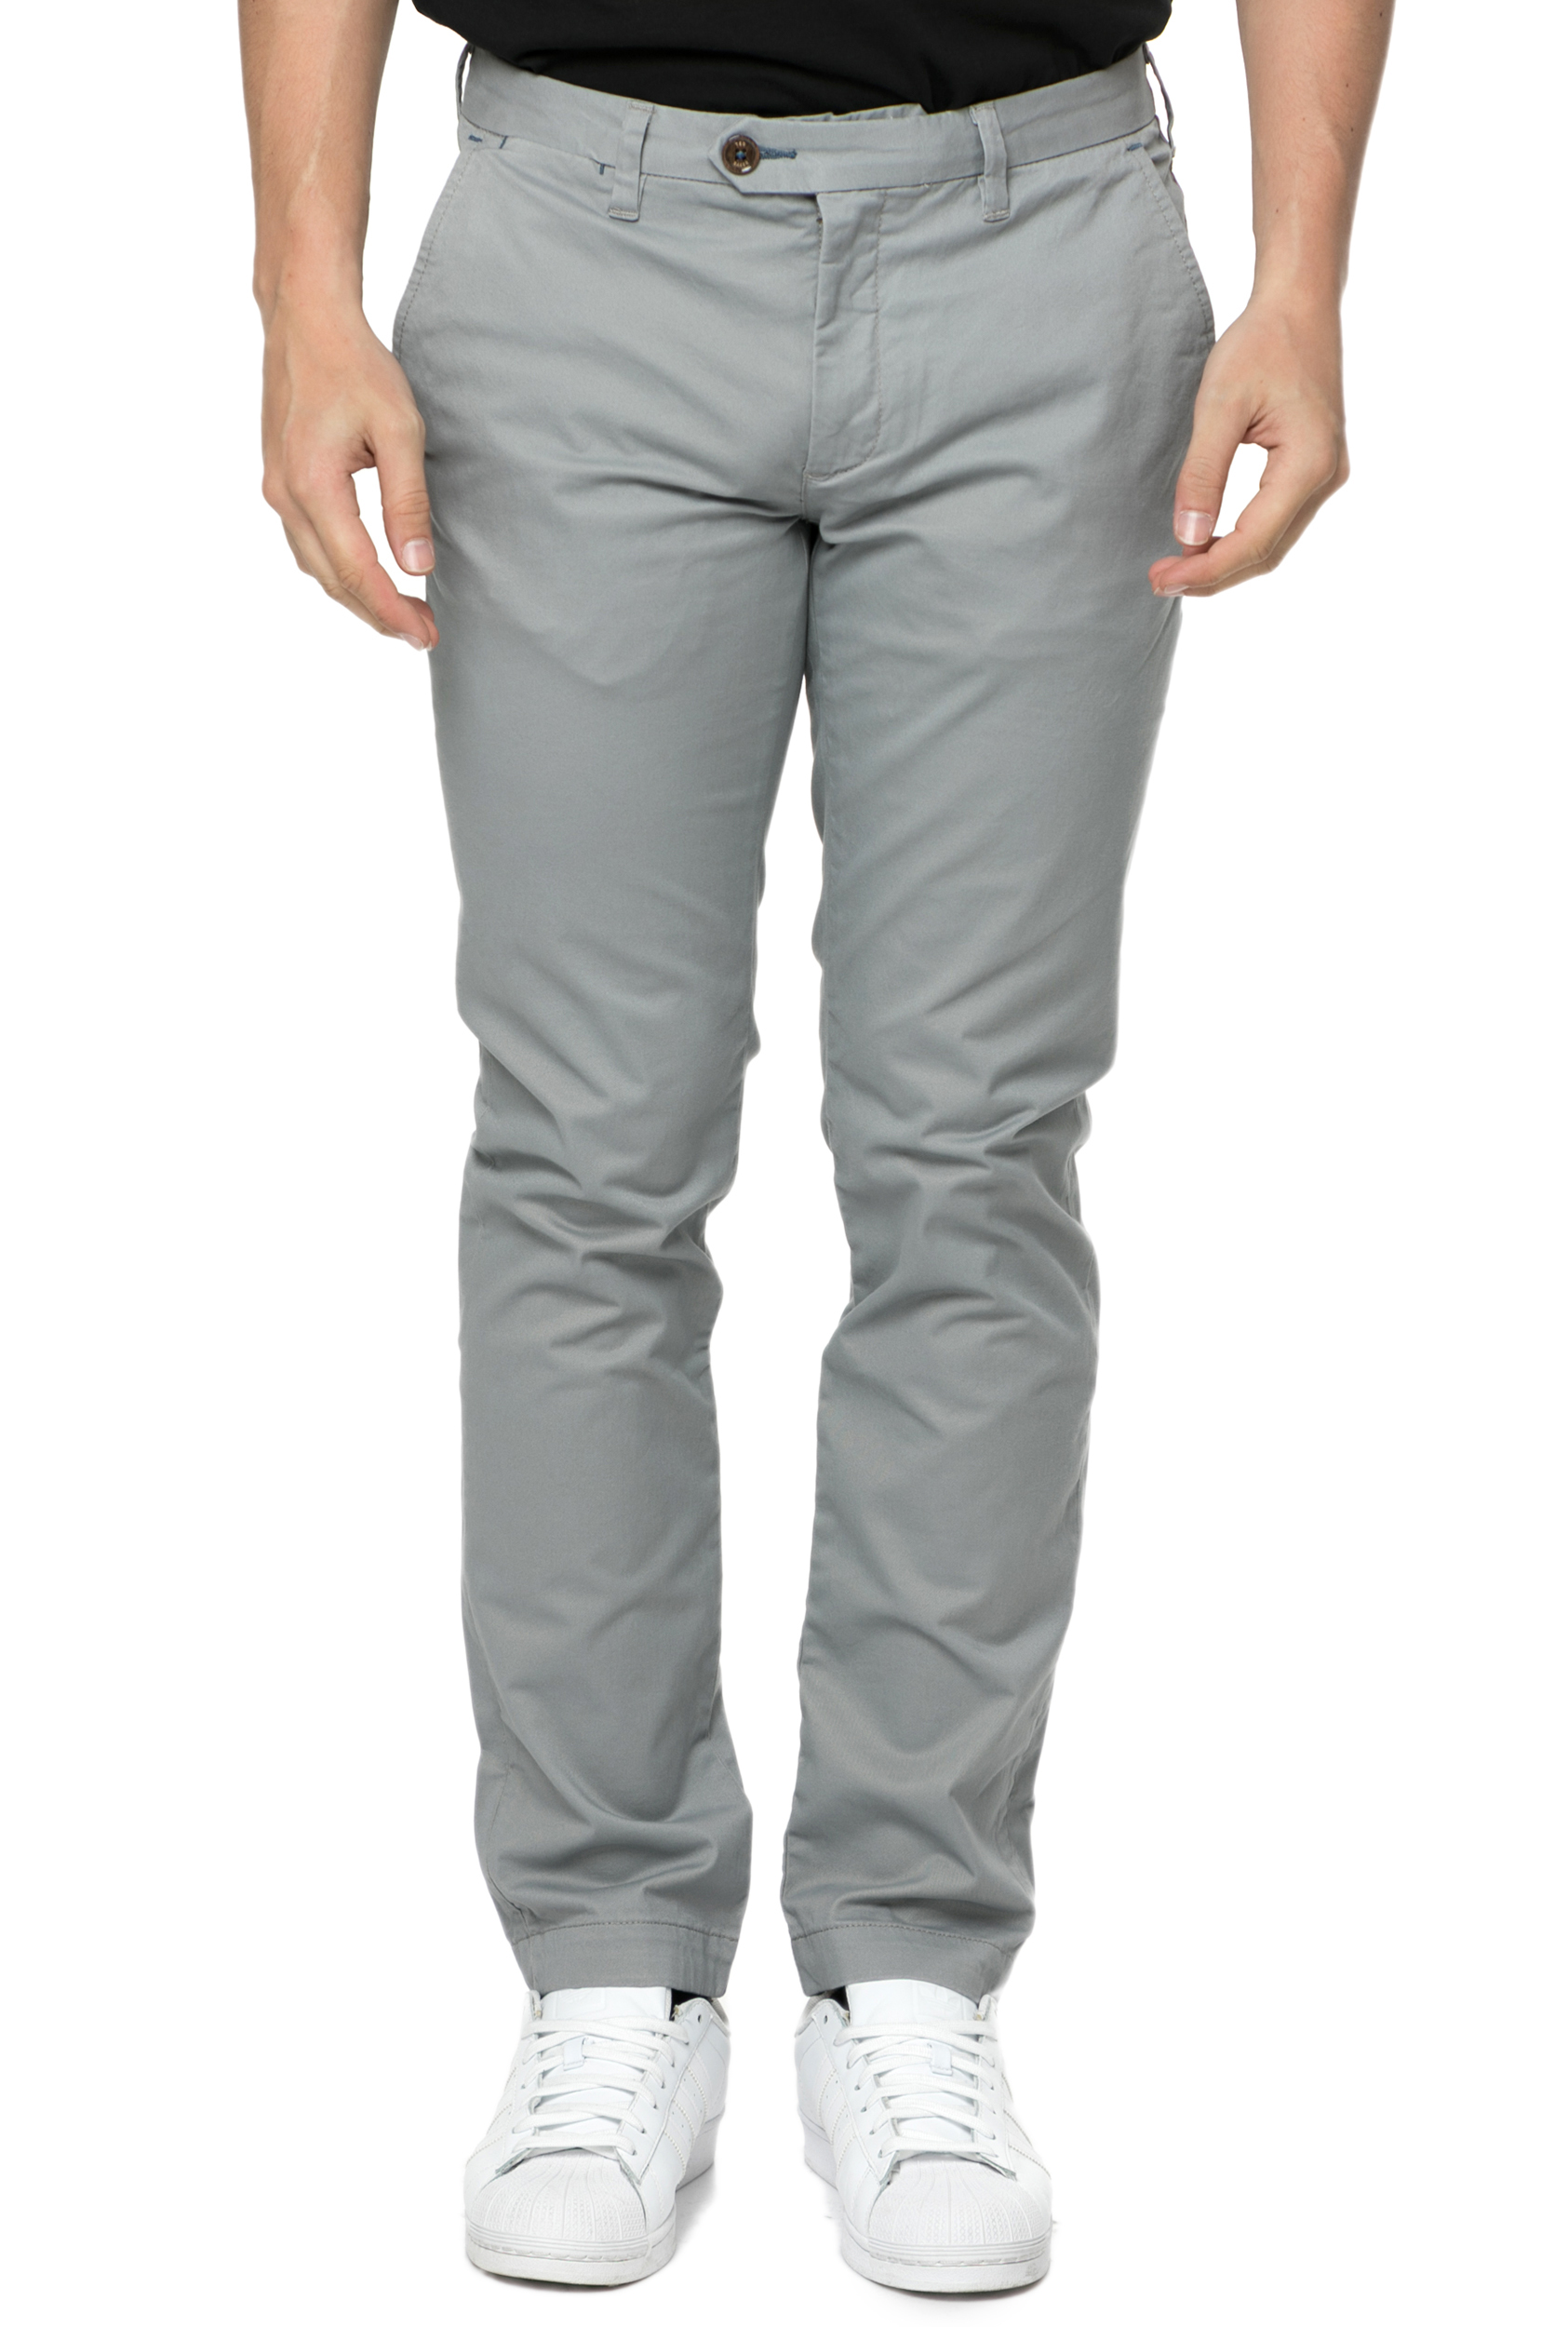 TED BAKER - Ανδρικό Chino Παντελόνι Ted Baker PROCOR SLIM FIT Γκρι